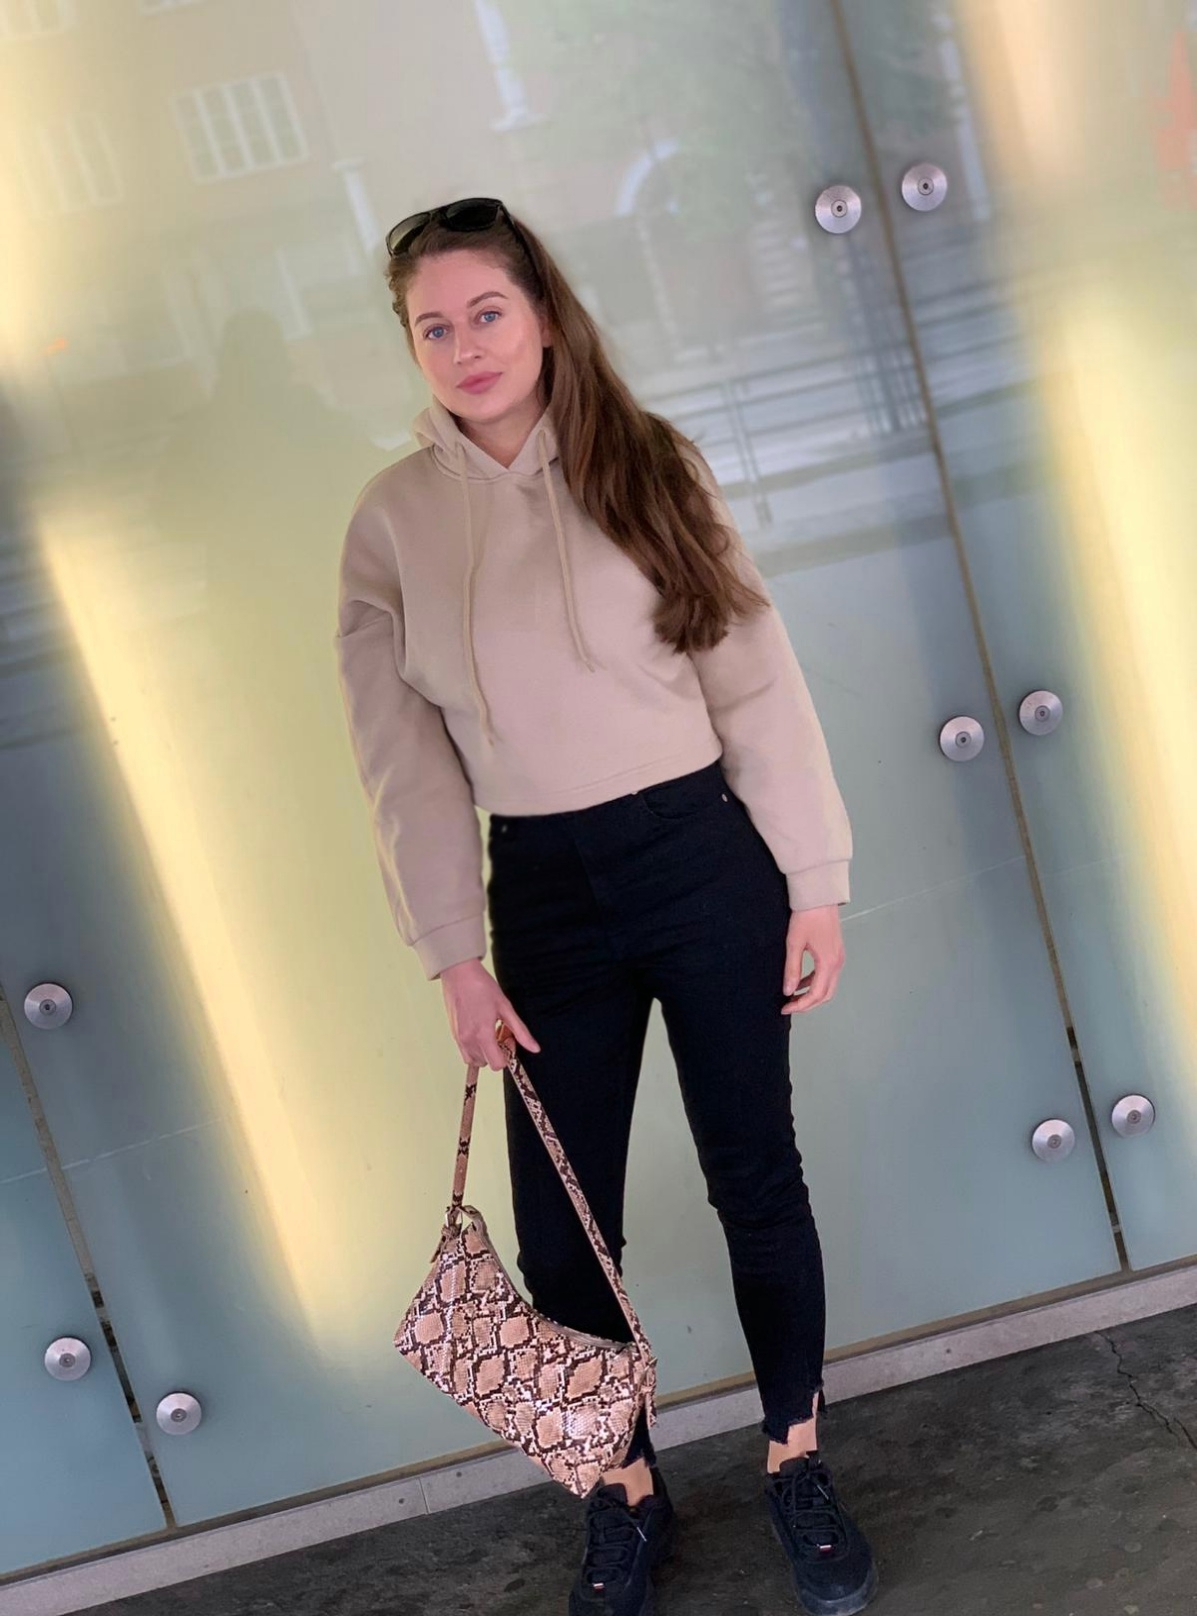 isalicious-blogg-blog-blogger-blogging-antrekk-outfit-stil-mote-trend-fashion-style-ootod-nellycom-nelly-nakd-missguided-look-sminke-makeup-drammen-outfits-hm-hm-1.png